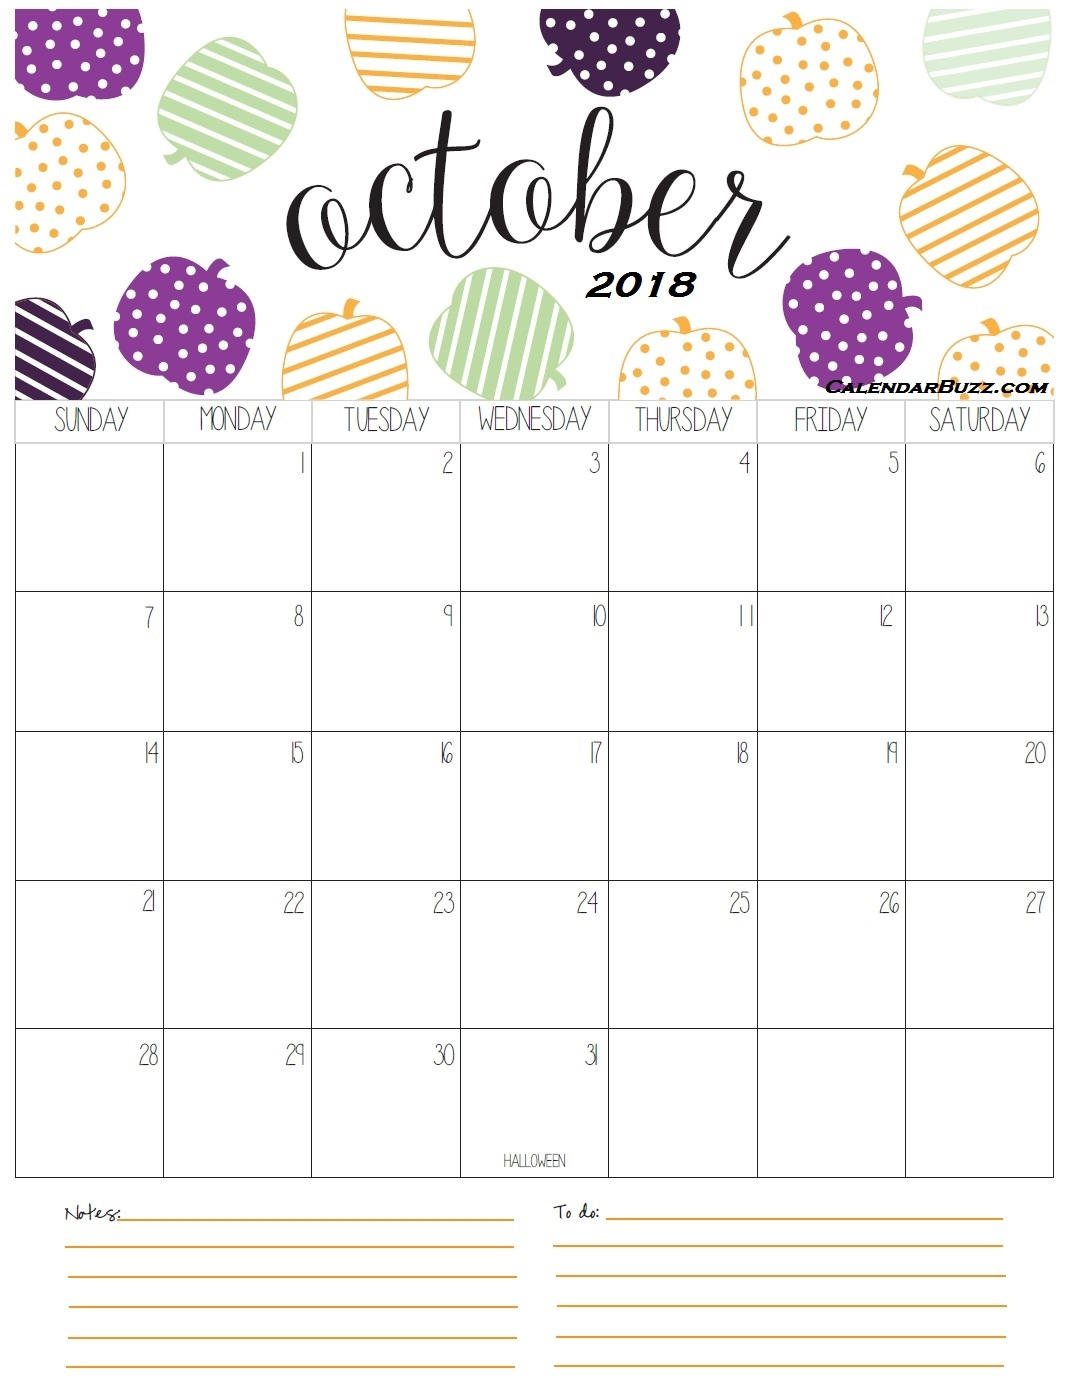 printable october calendar 2018 yelommyphonecompanyco Printable October 2018 Calendar erdferdf